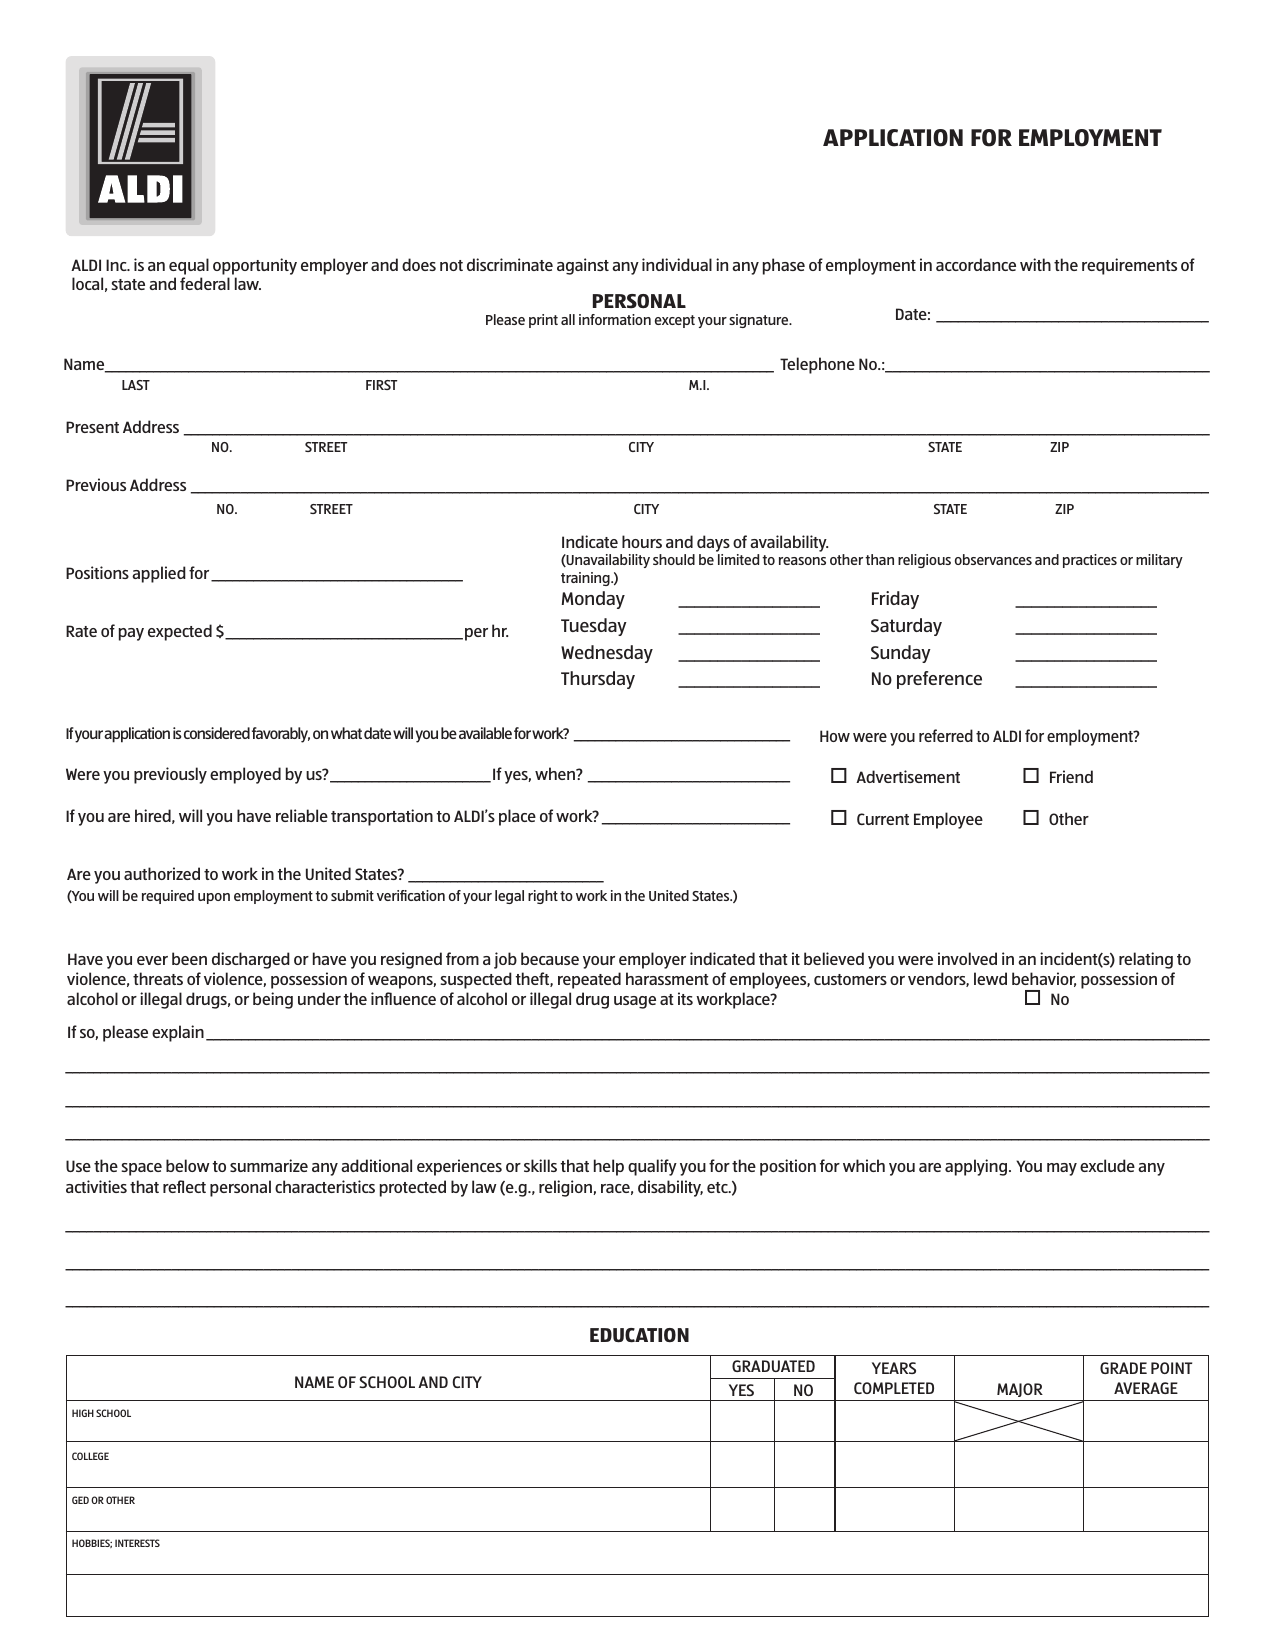 Printable Employment Application Form on pacsun application print out form, printable teacher application, printable job application templates, printable quitclaim deed form, printable dating application form, sample job application form, printable blank job application form, printable confidentiality agreement form, online job application form, printable job application form pdf, generic job application form, printable goodwill application form, hardee's fast food application form, forever 21 printable job application form, printable general application form, printable training form, government employment form, basic job application form, easy job application form, sonic printable job application form,